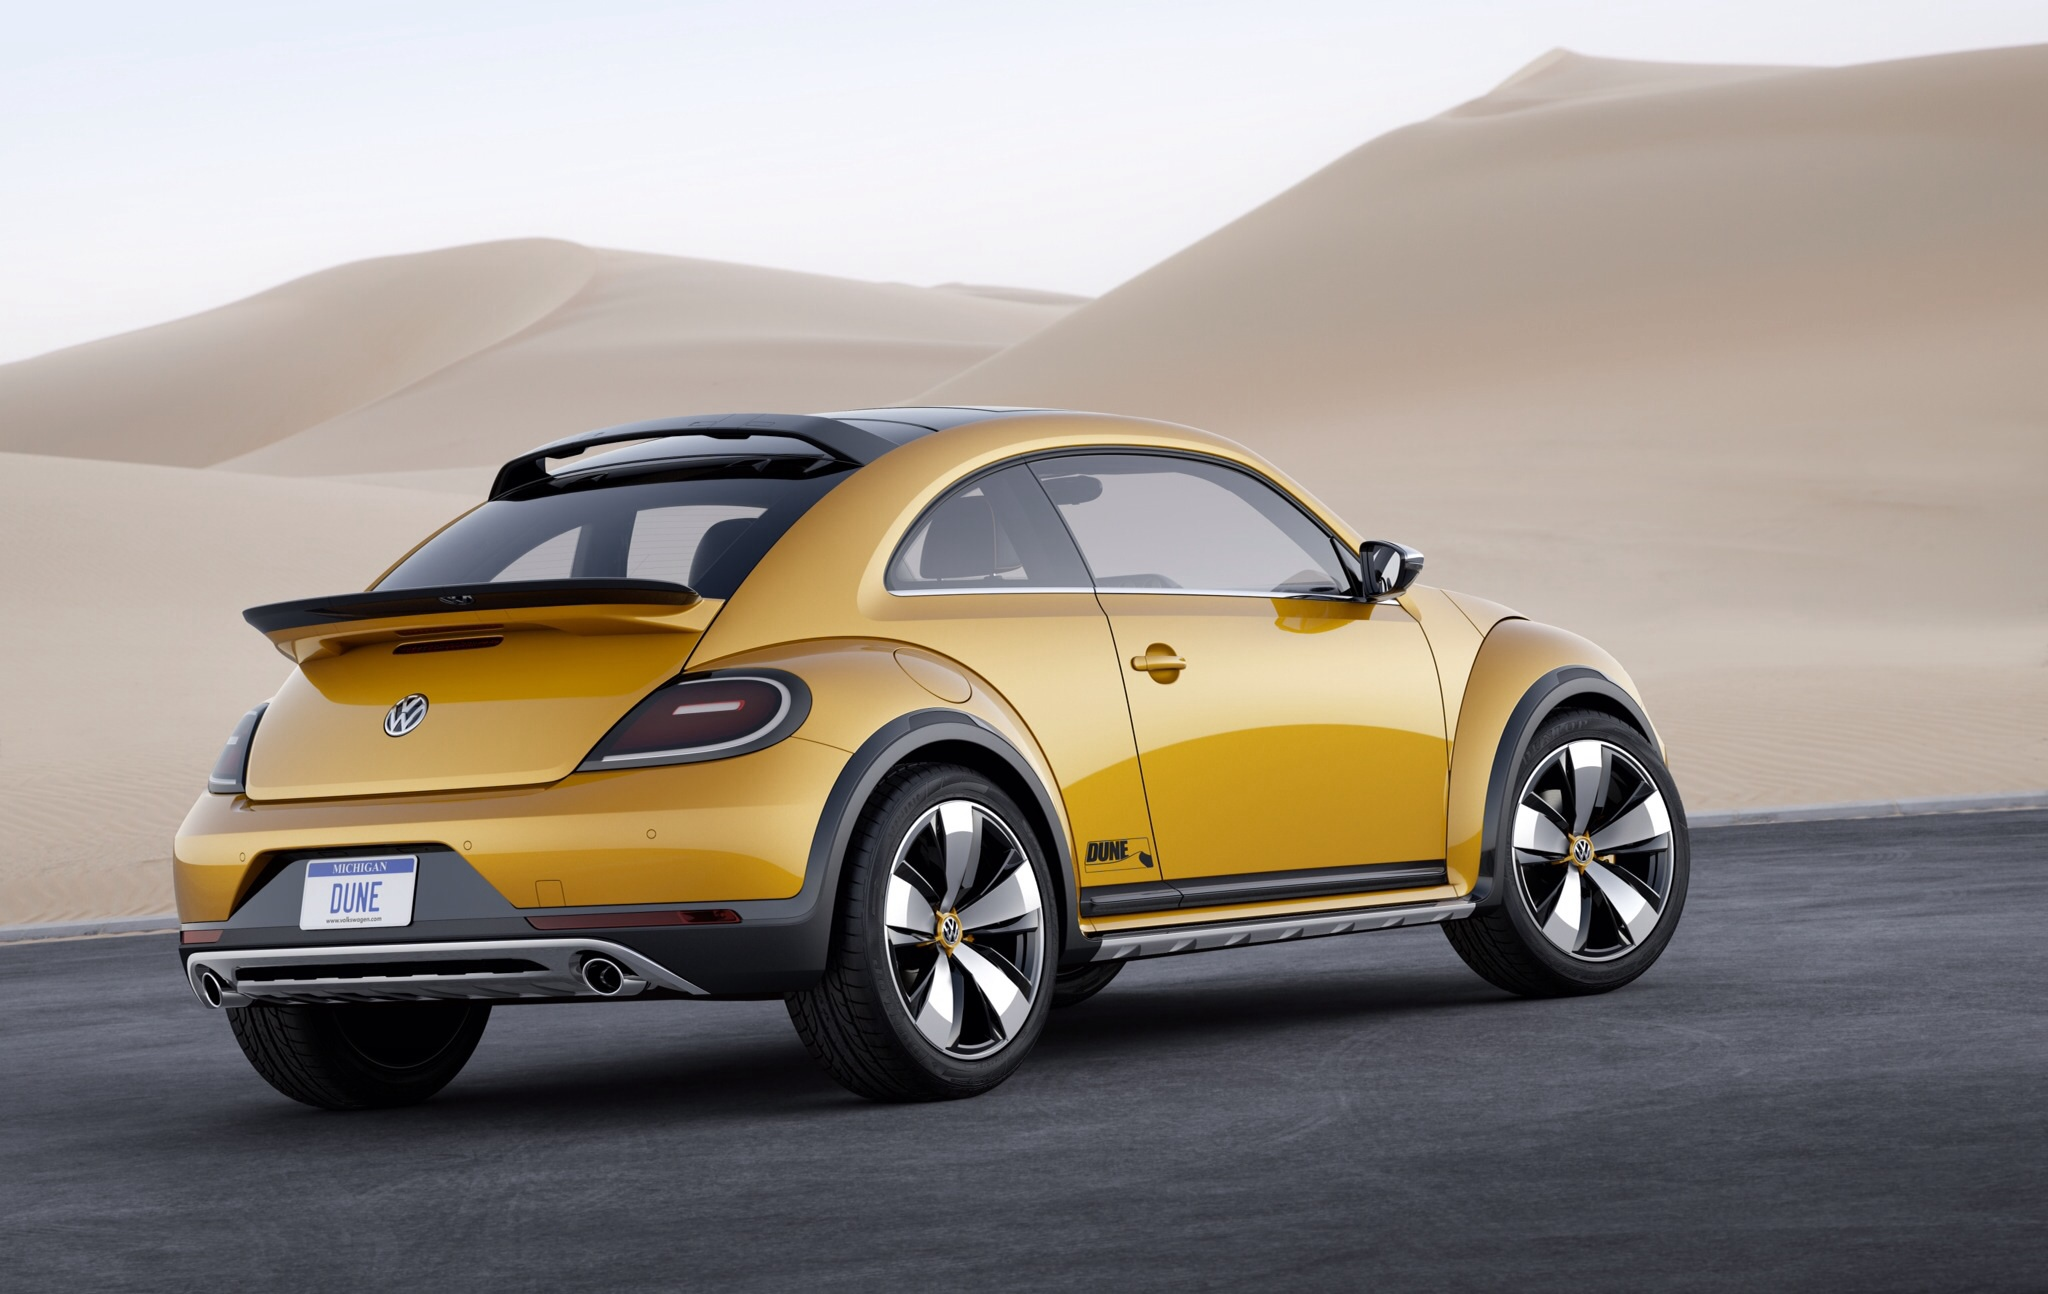 volkswagen beetle dune 2014 cartype. Black Bedroom Furniture Sets. Home Design Ideas